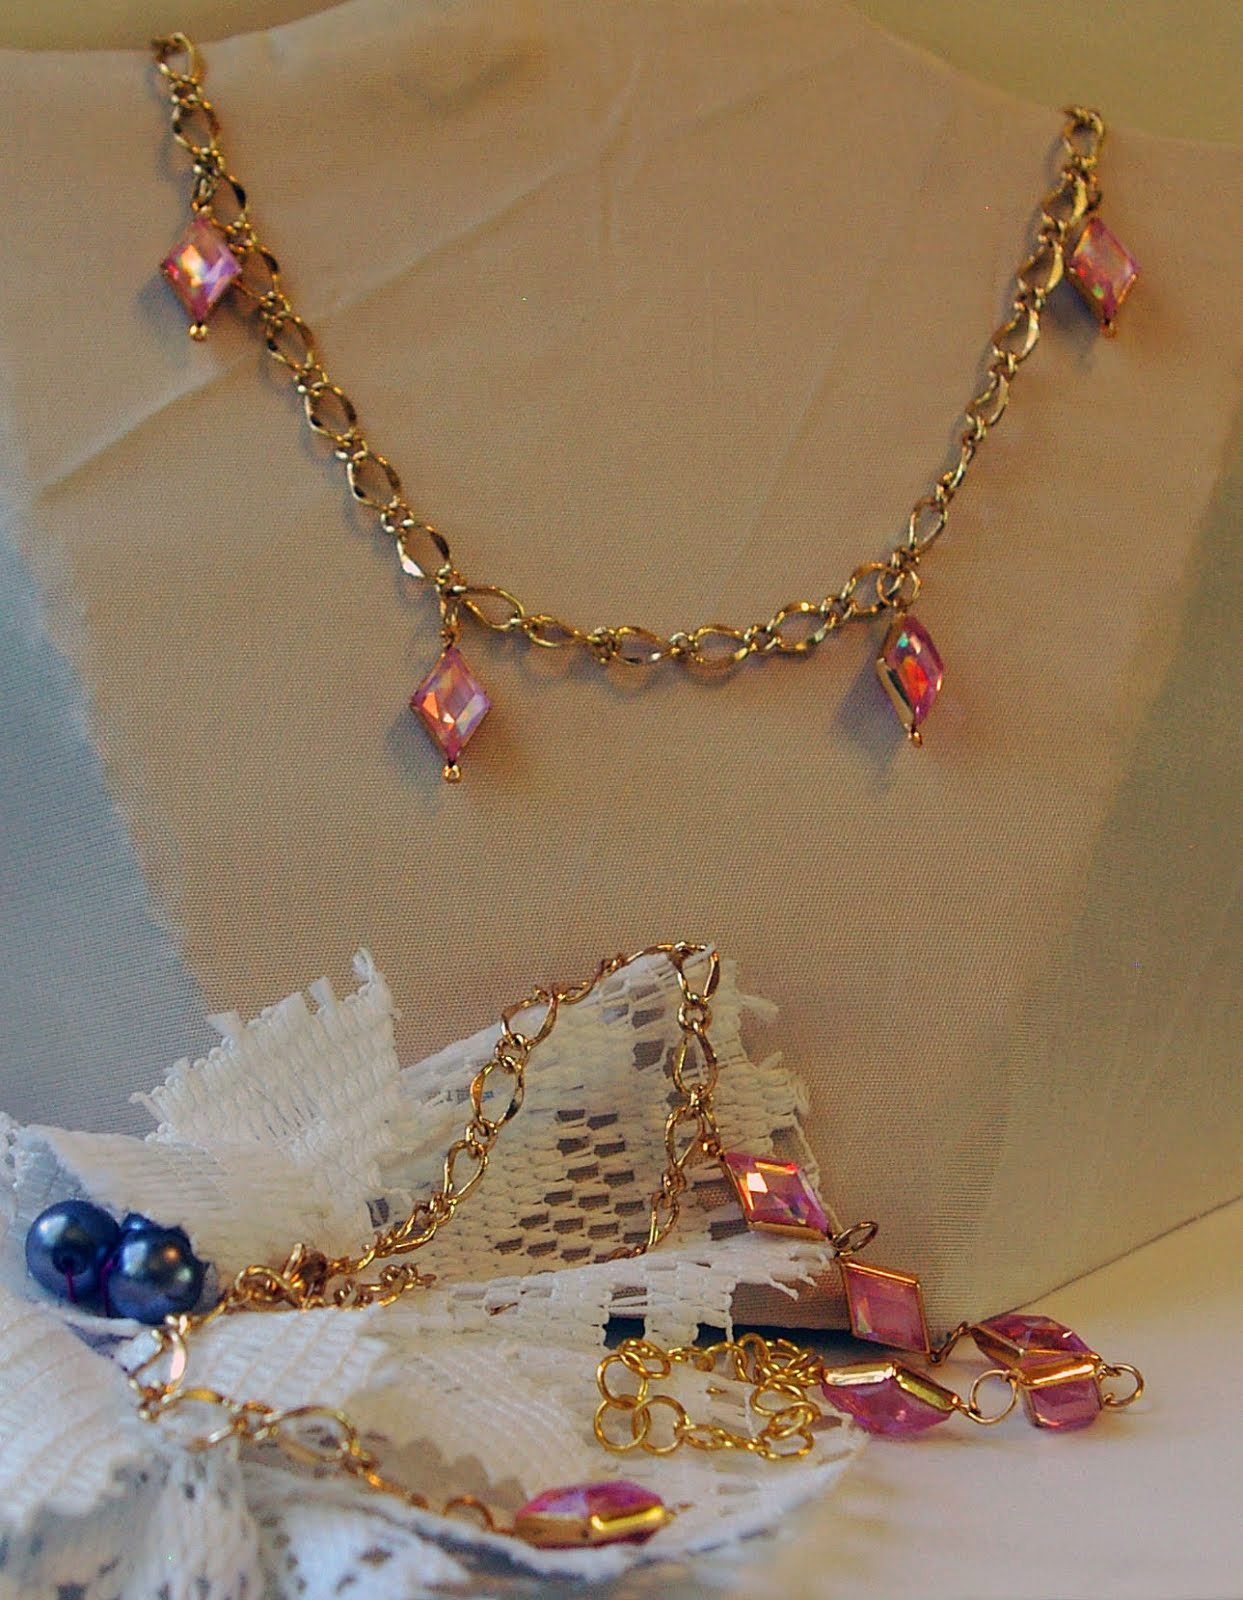 Slave bracelet with pink necklace